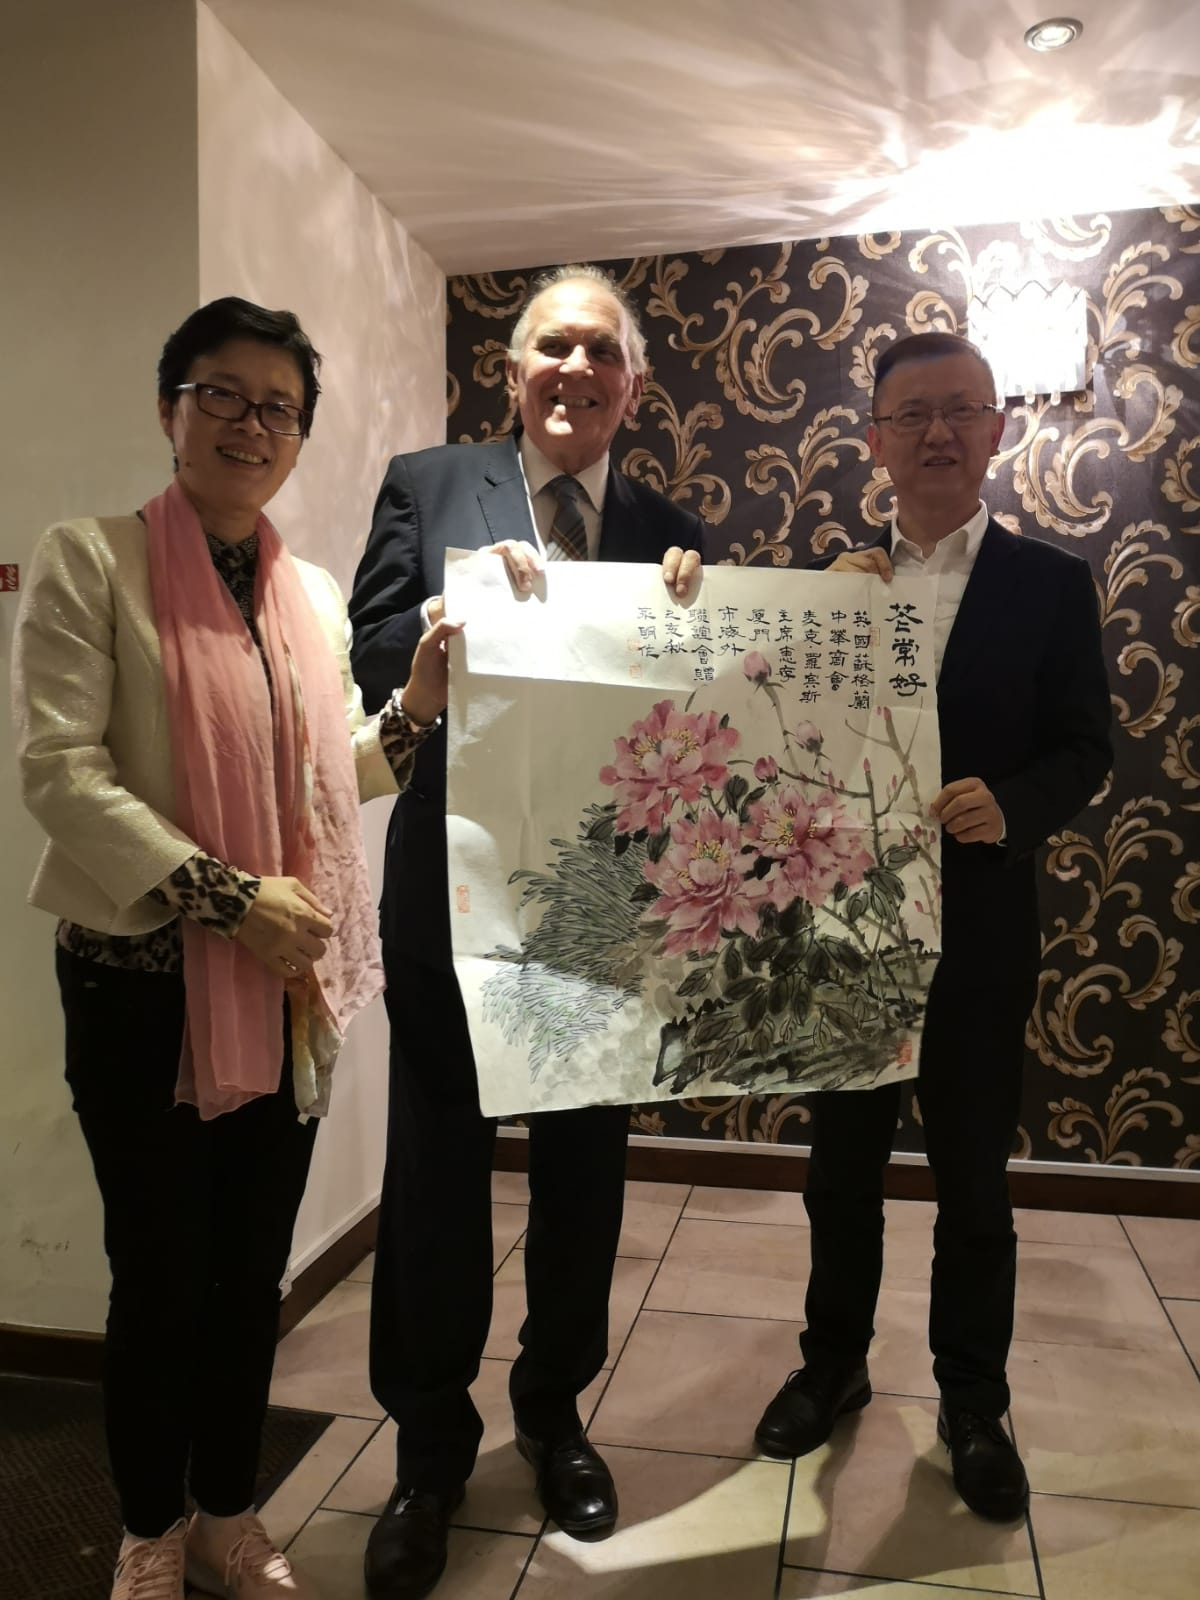 scottish and chinese councillors meet at The Chinese Manor House in Edinburgh to discuss tourism